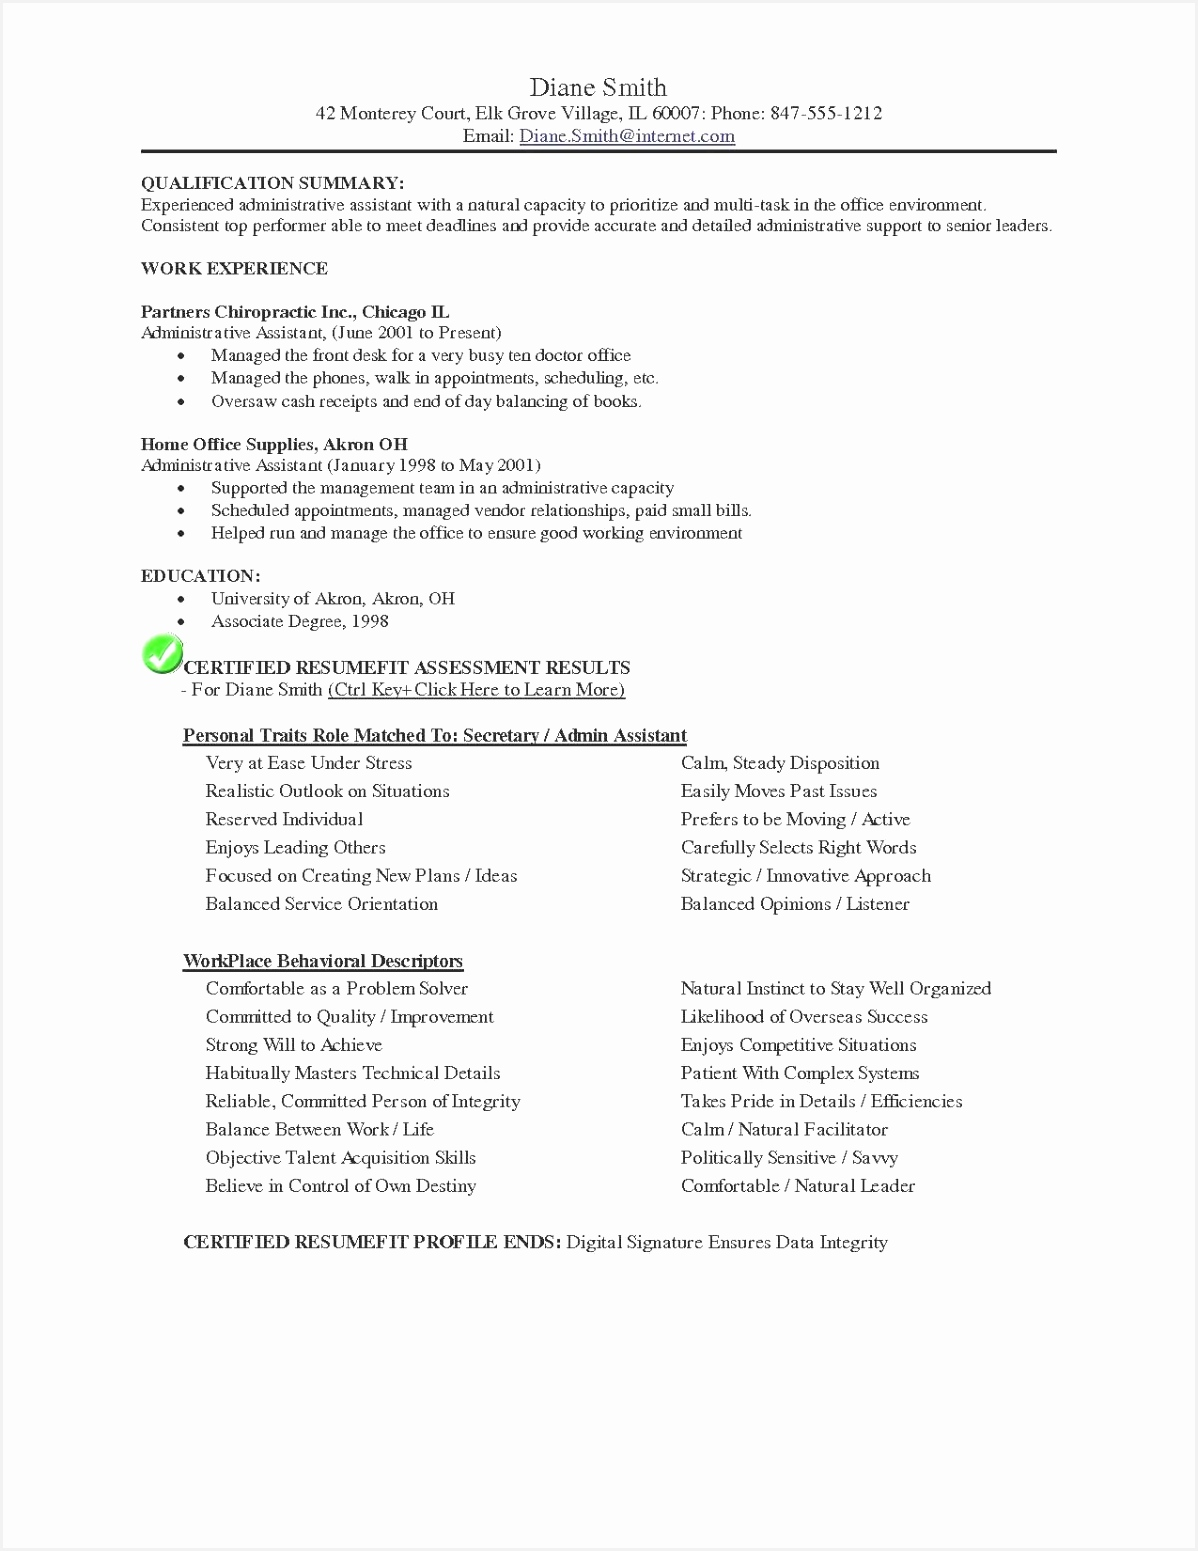 Admin Resume Samples B6srd Luxury 36 Ideas Administrative assistant Objective Statement All About Resume15511198